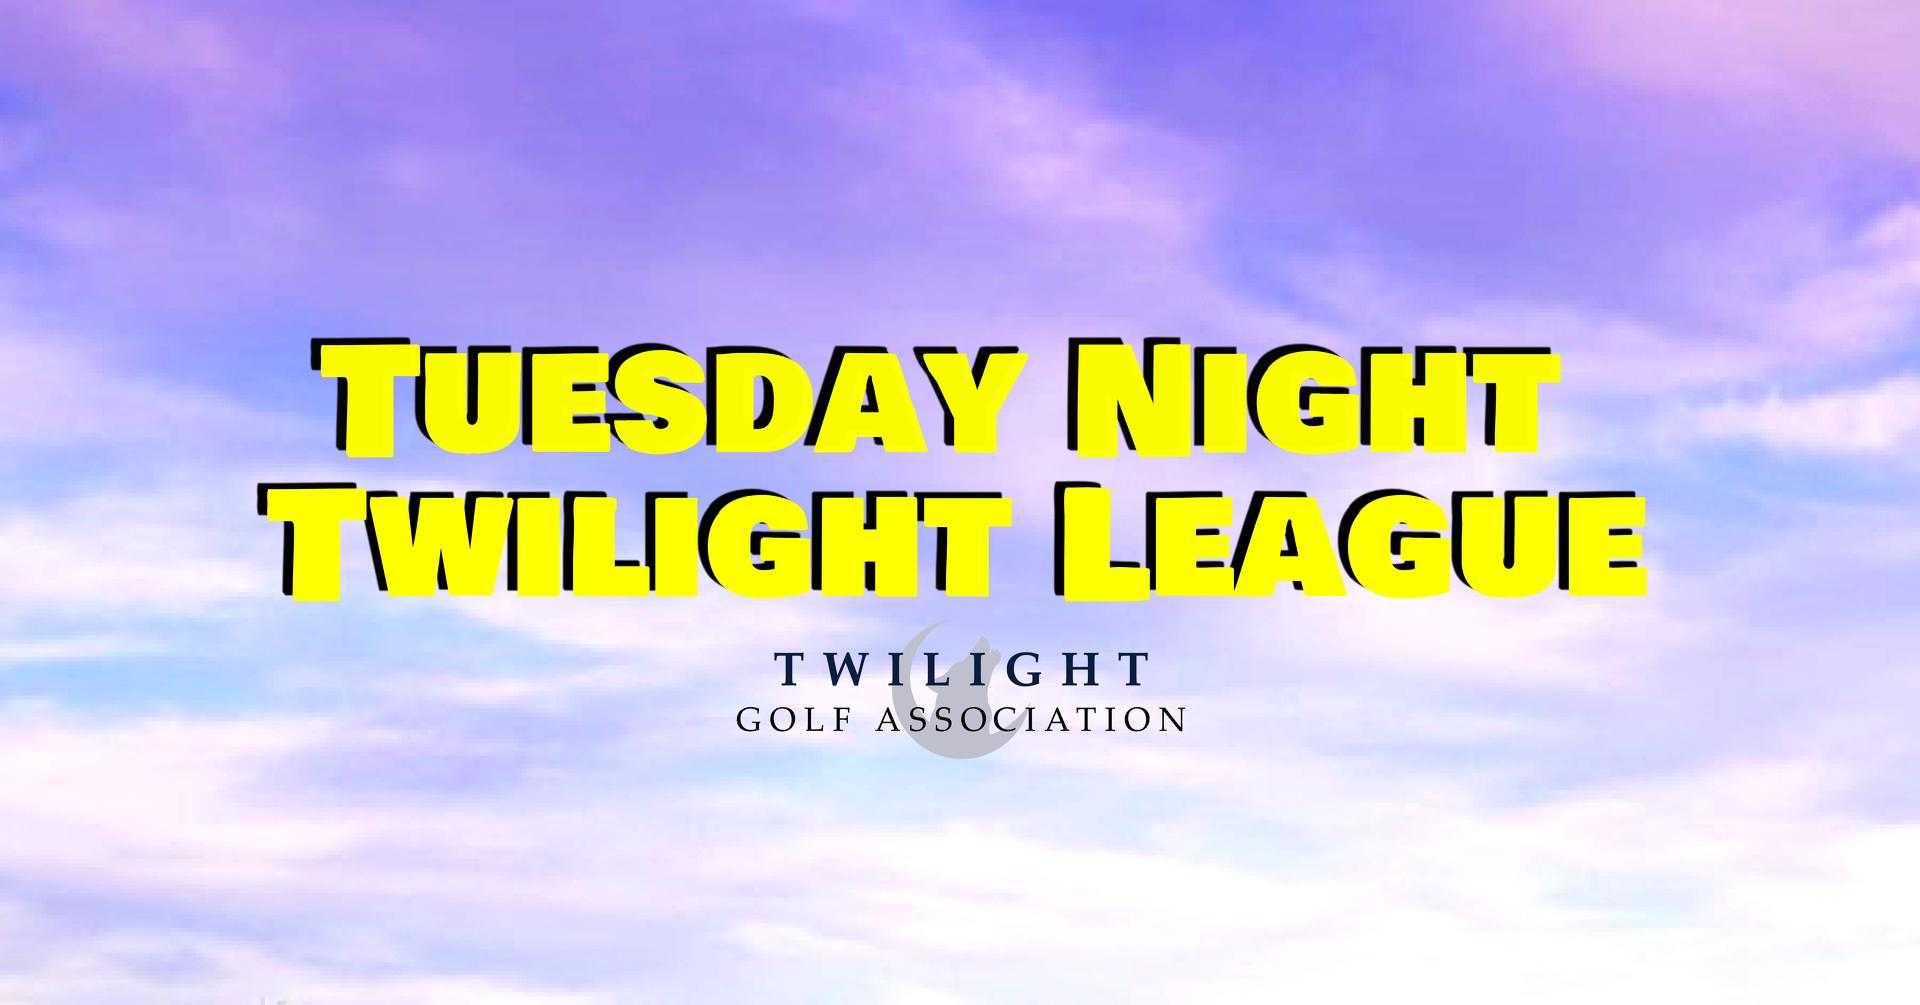 Tuesday Twilight League at Riverchase Golf Club